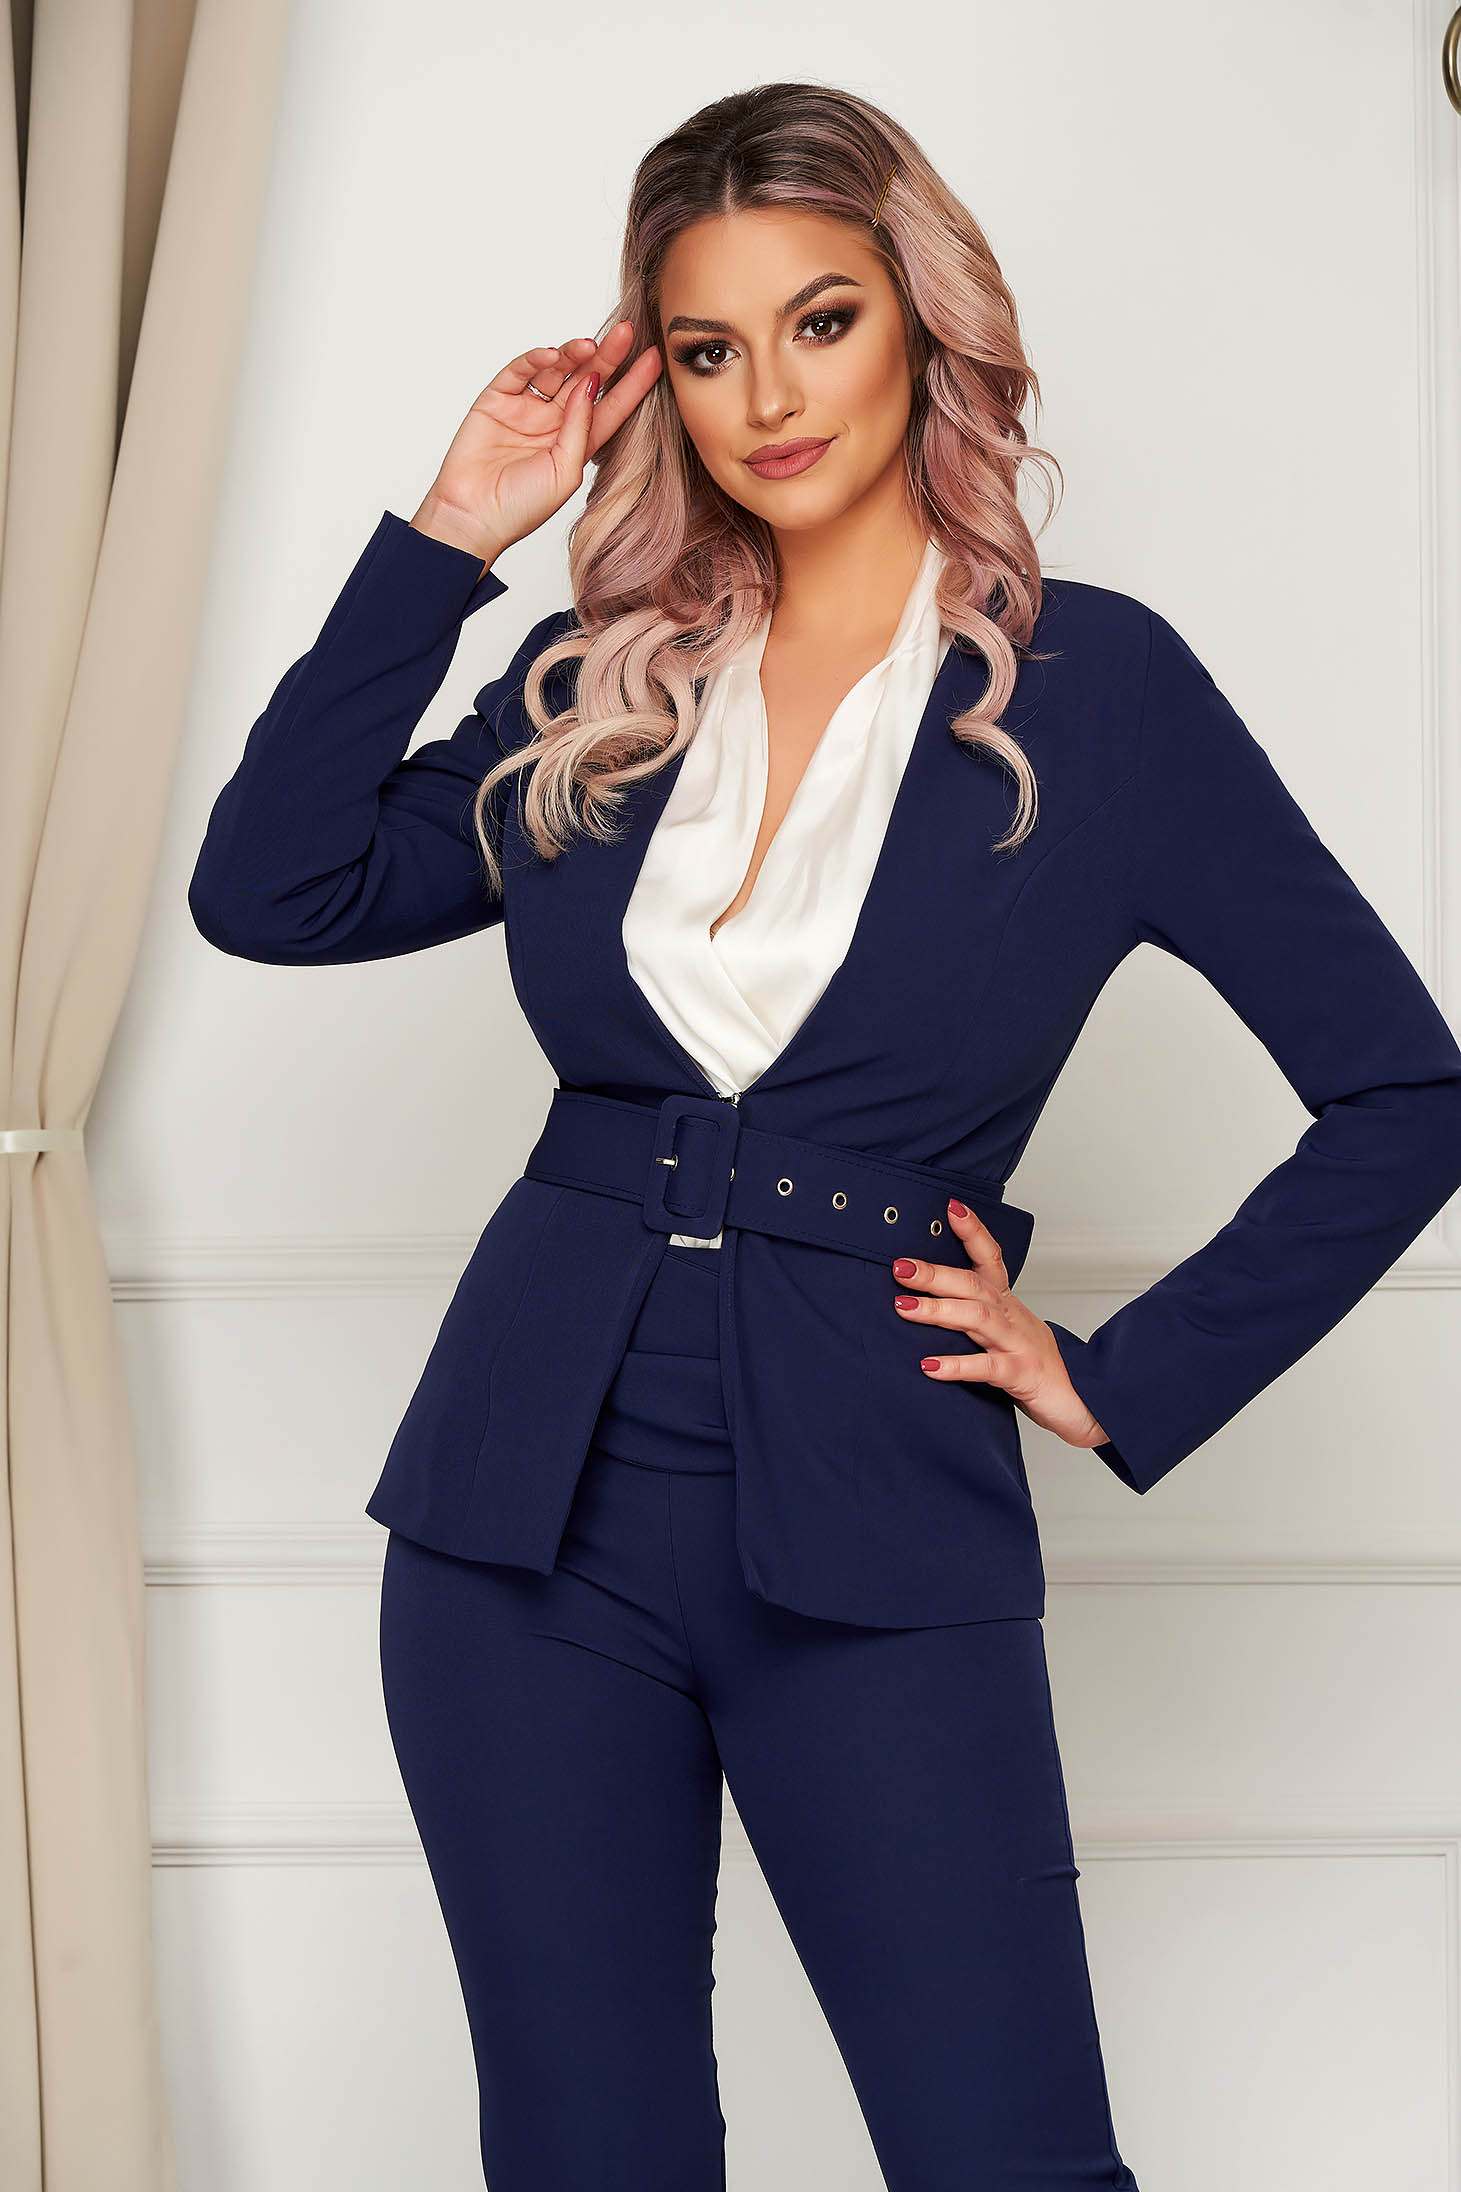 Darkblue jacket classical blazer tented slightly elastic fabric accessorized with belt